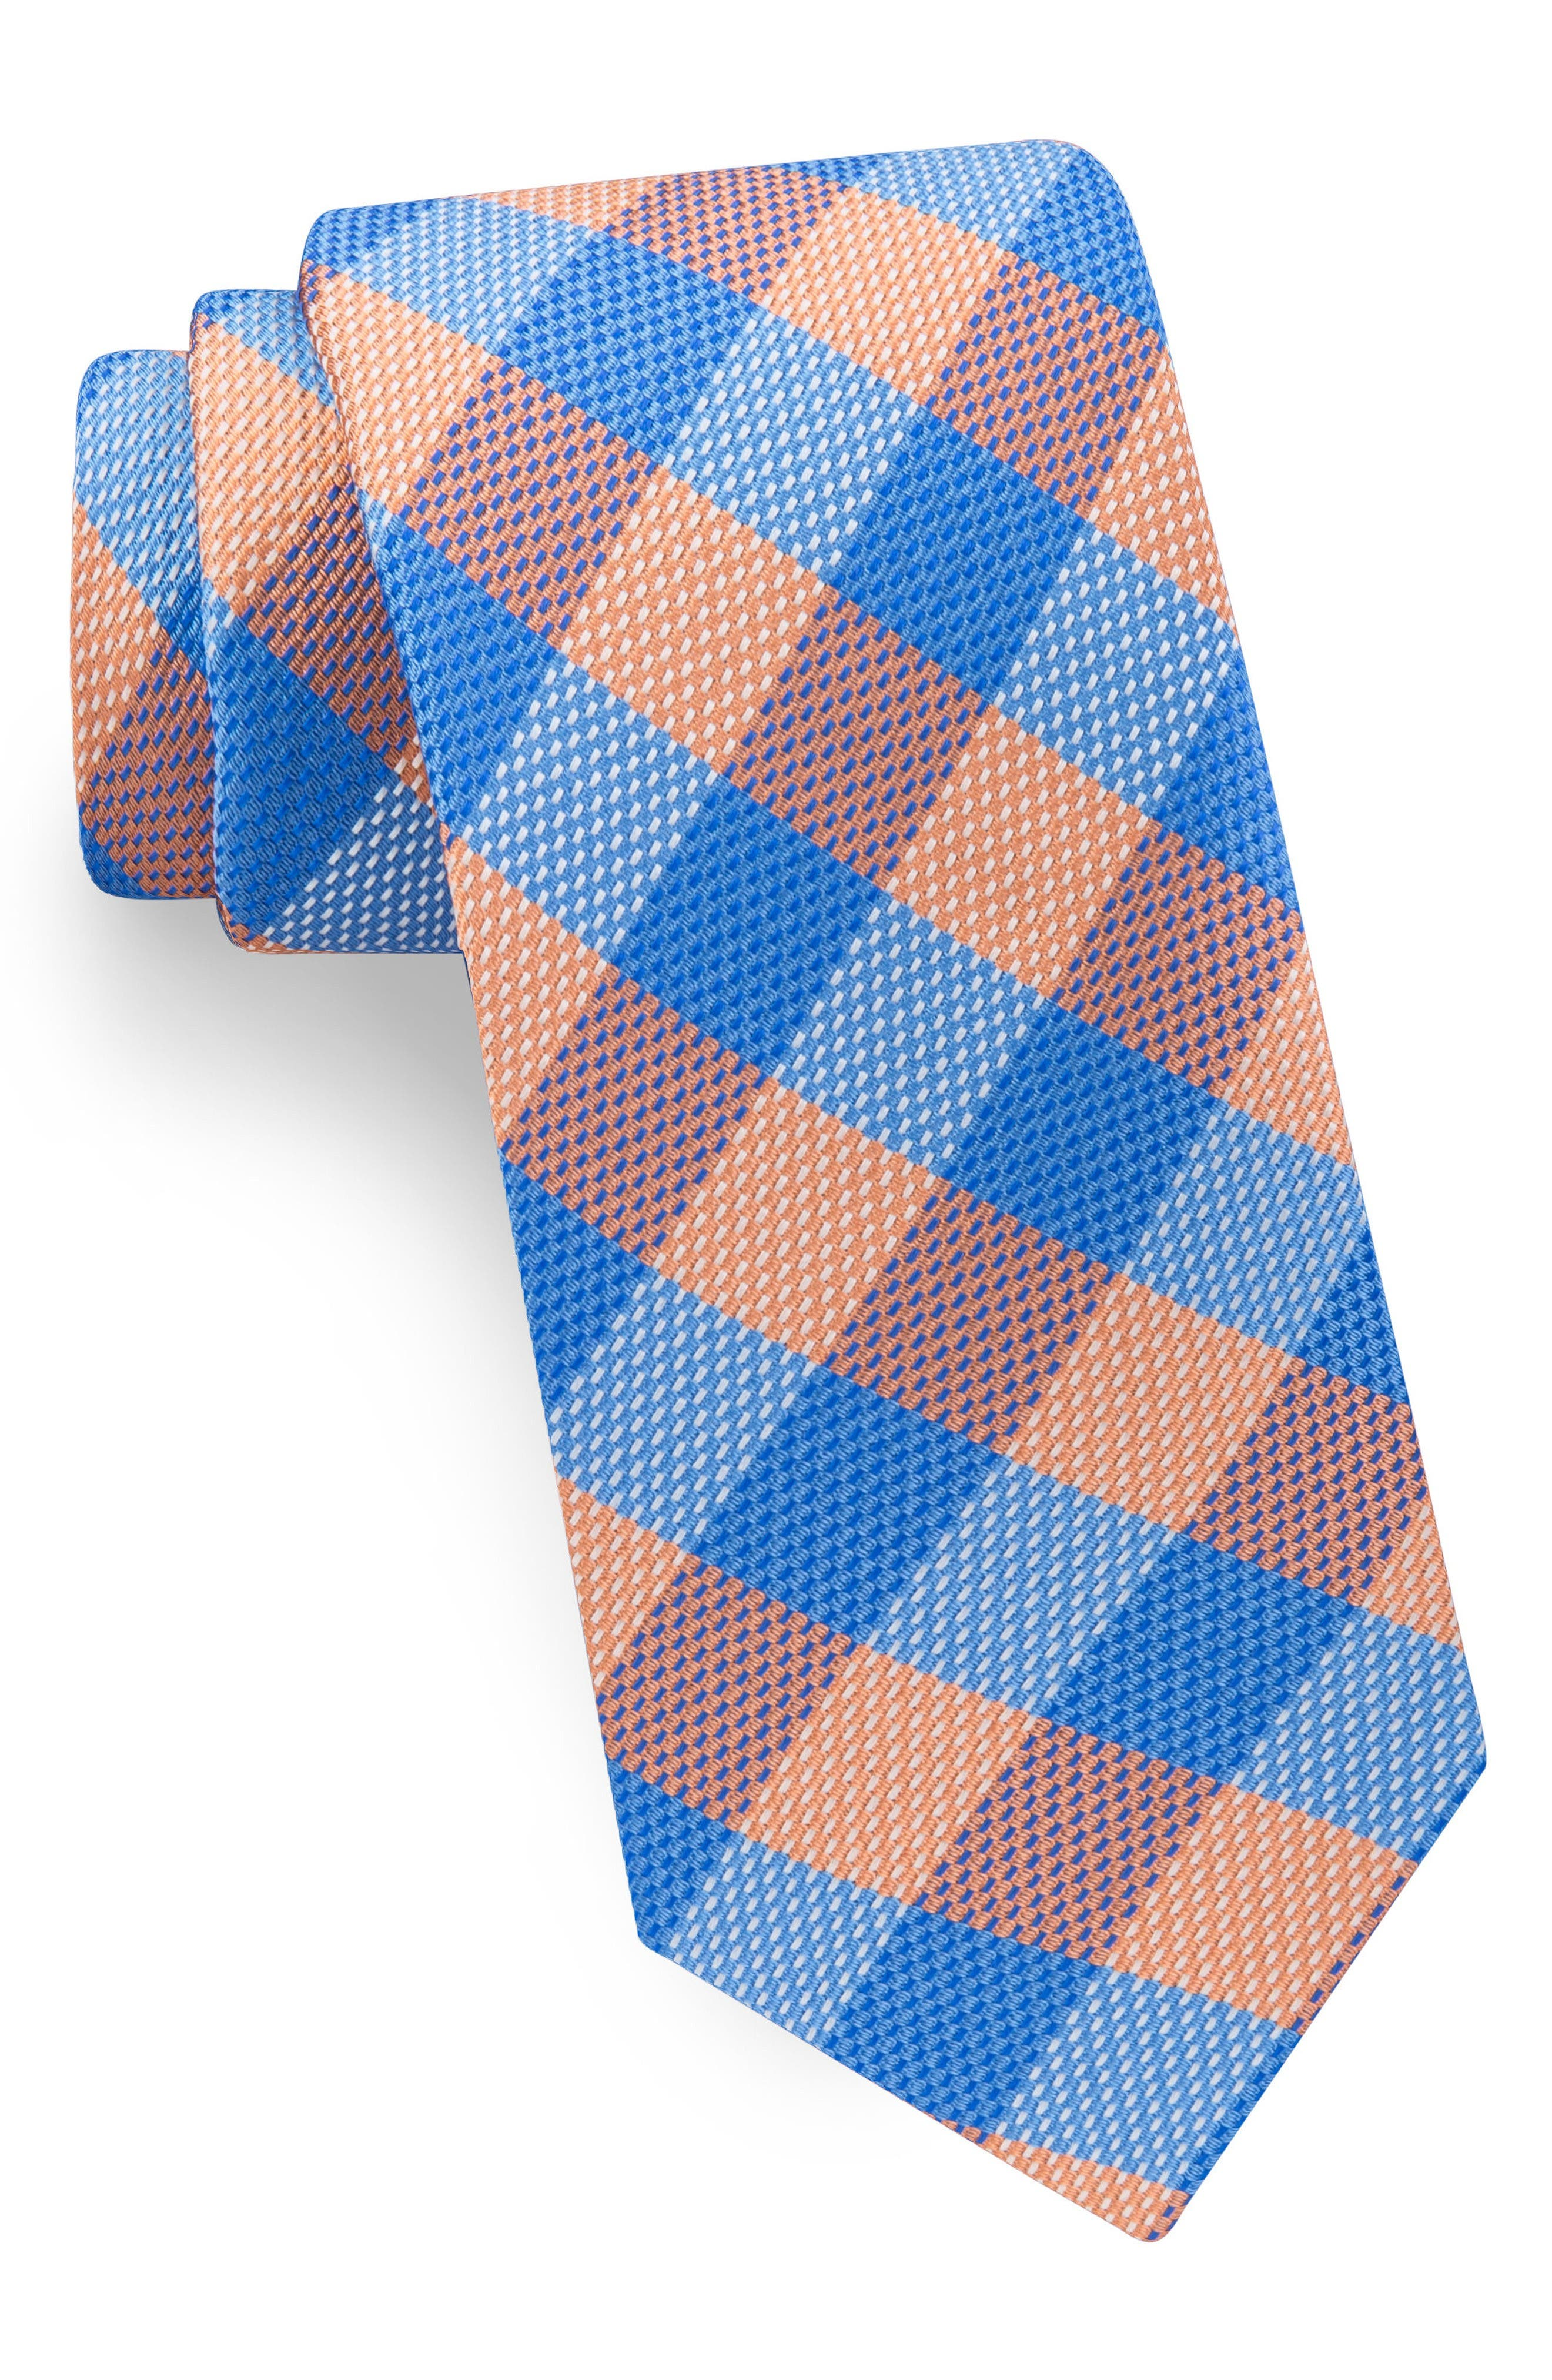 TED BAKER LONDON Derby Check Silk Tie